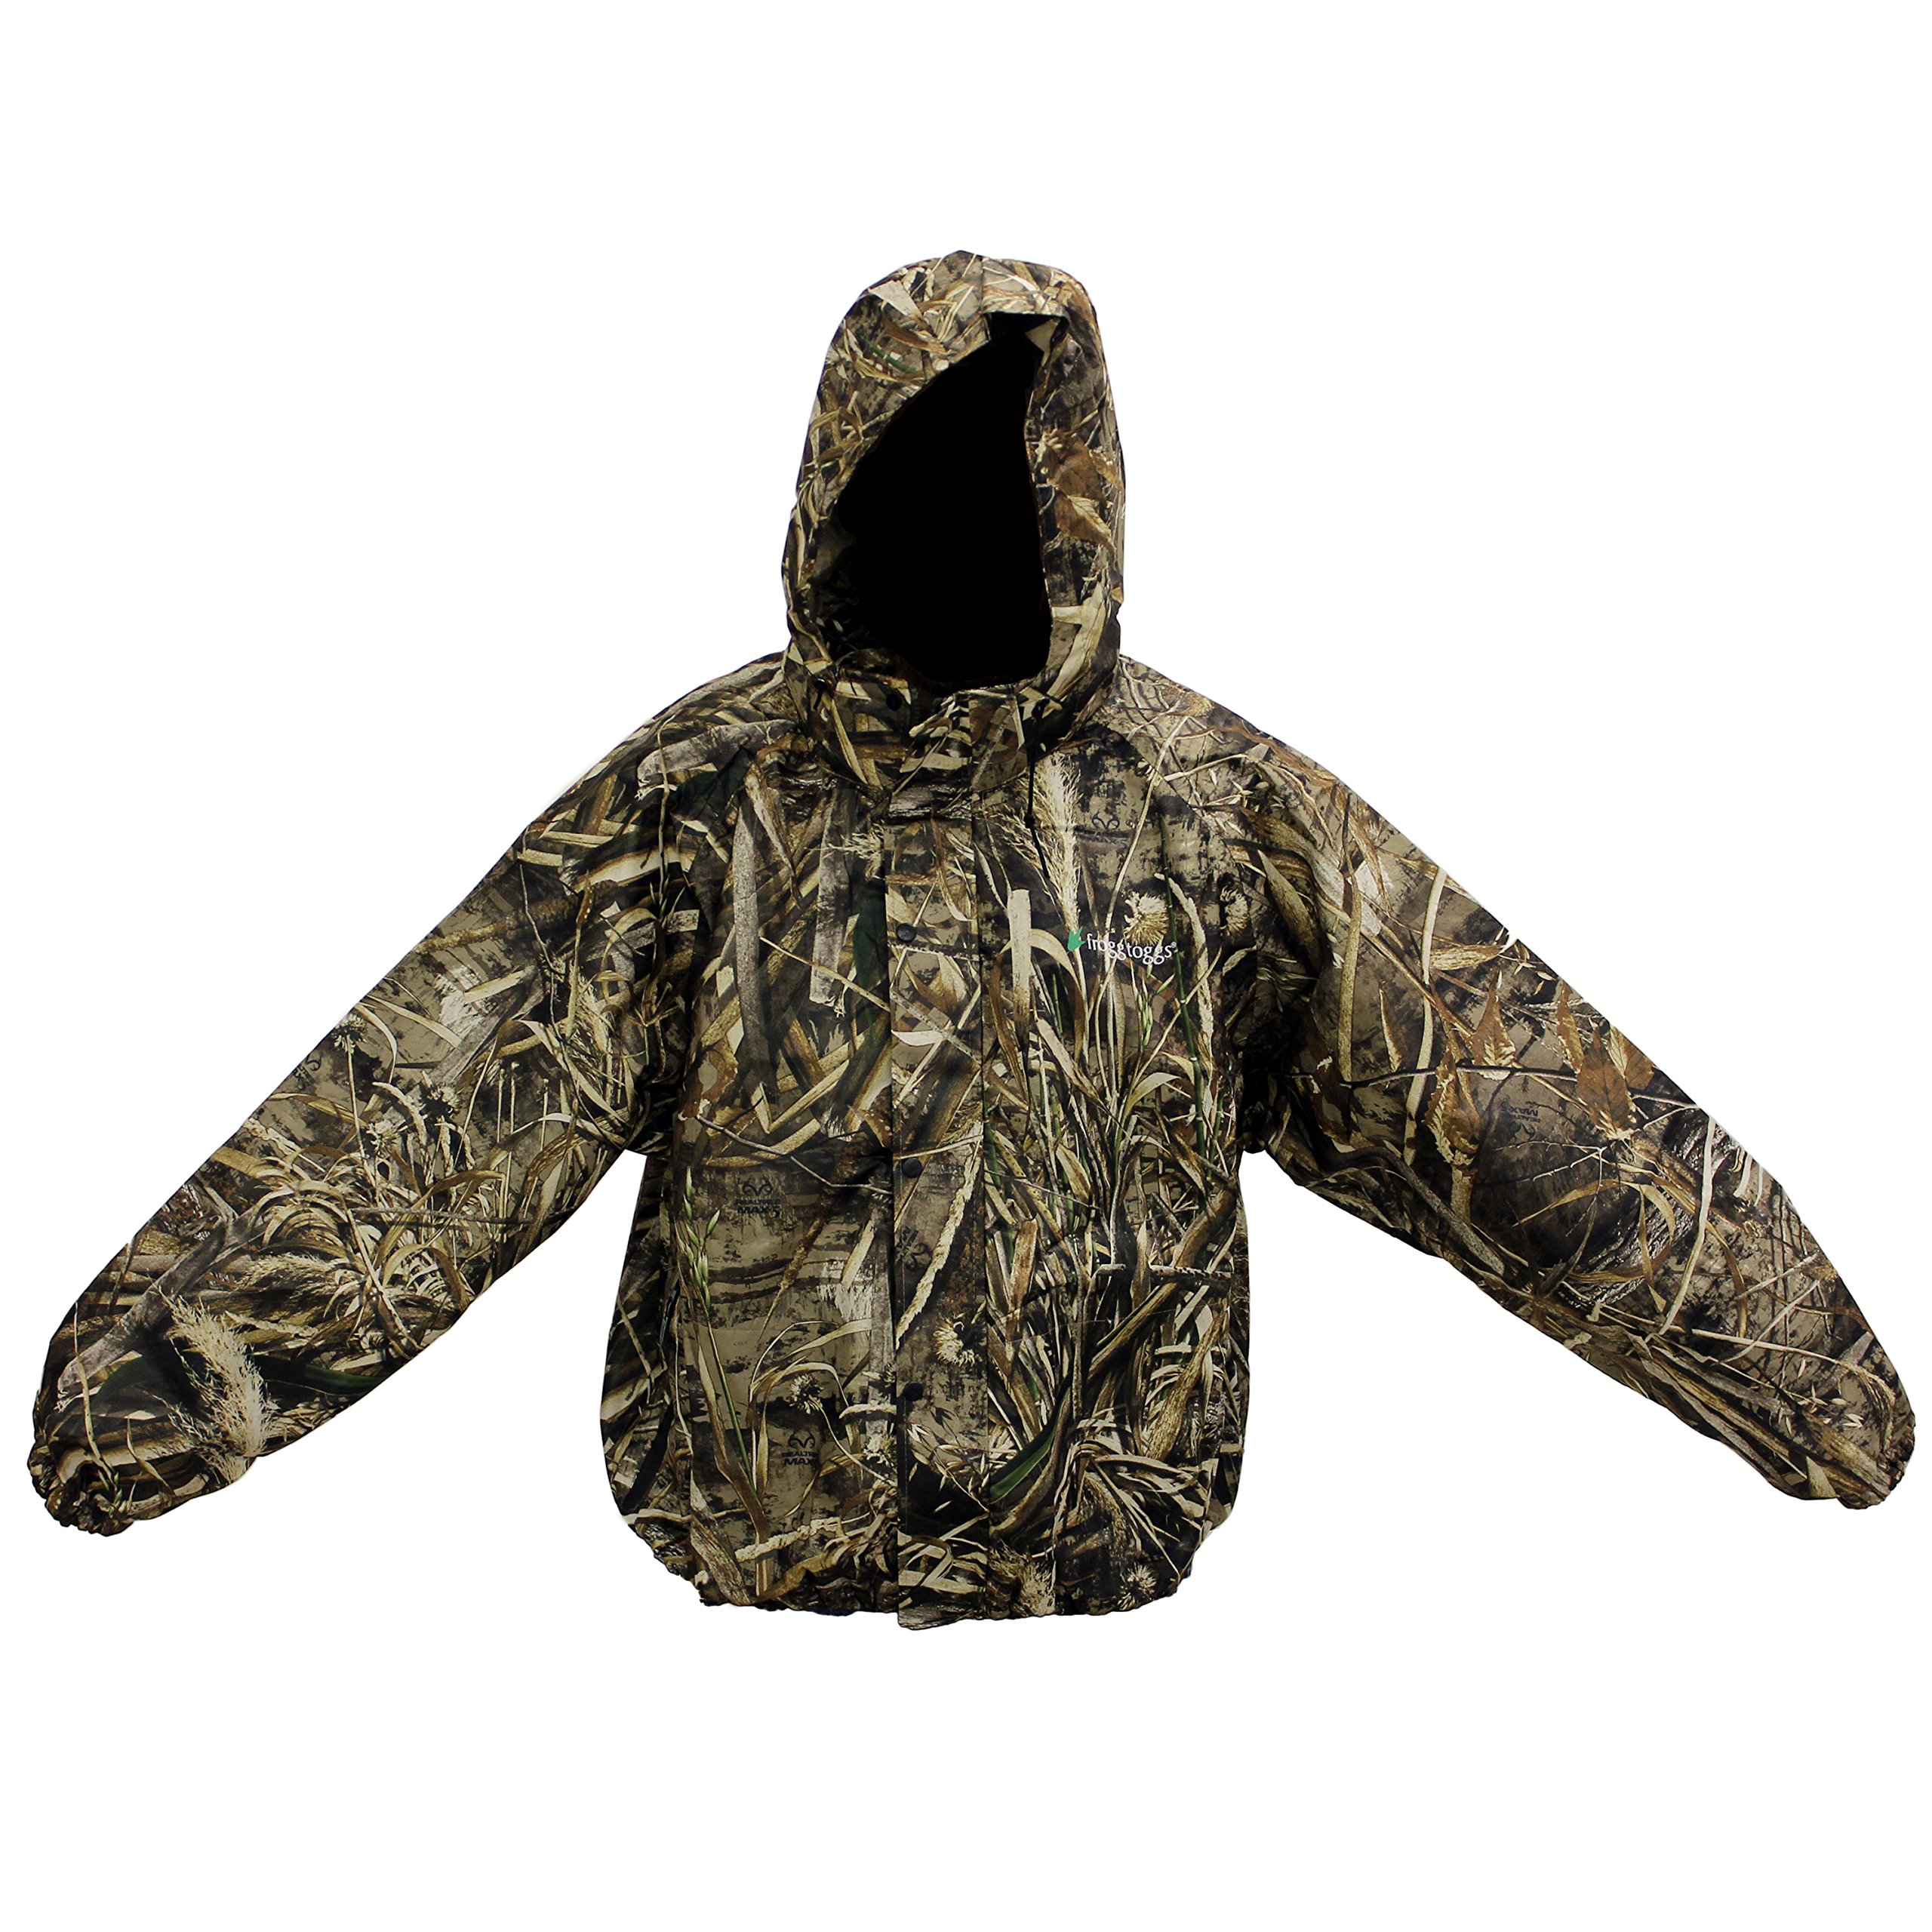 Frogg Toggs Pro Action Camo Jacket, Realtree Max 5, XX-Large